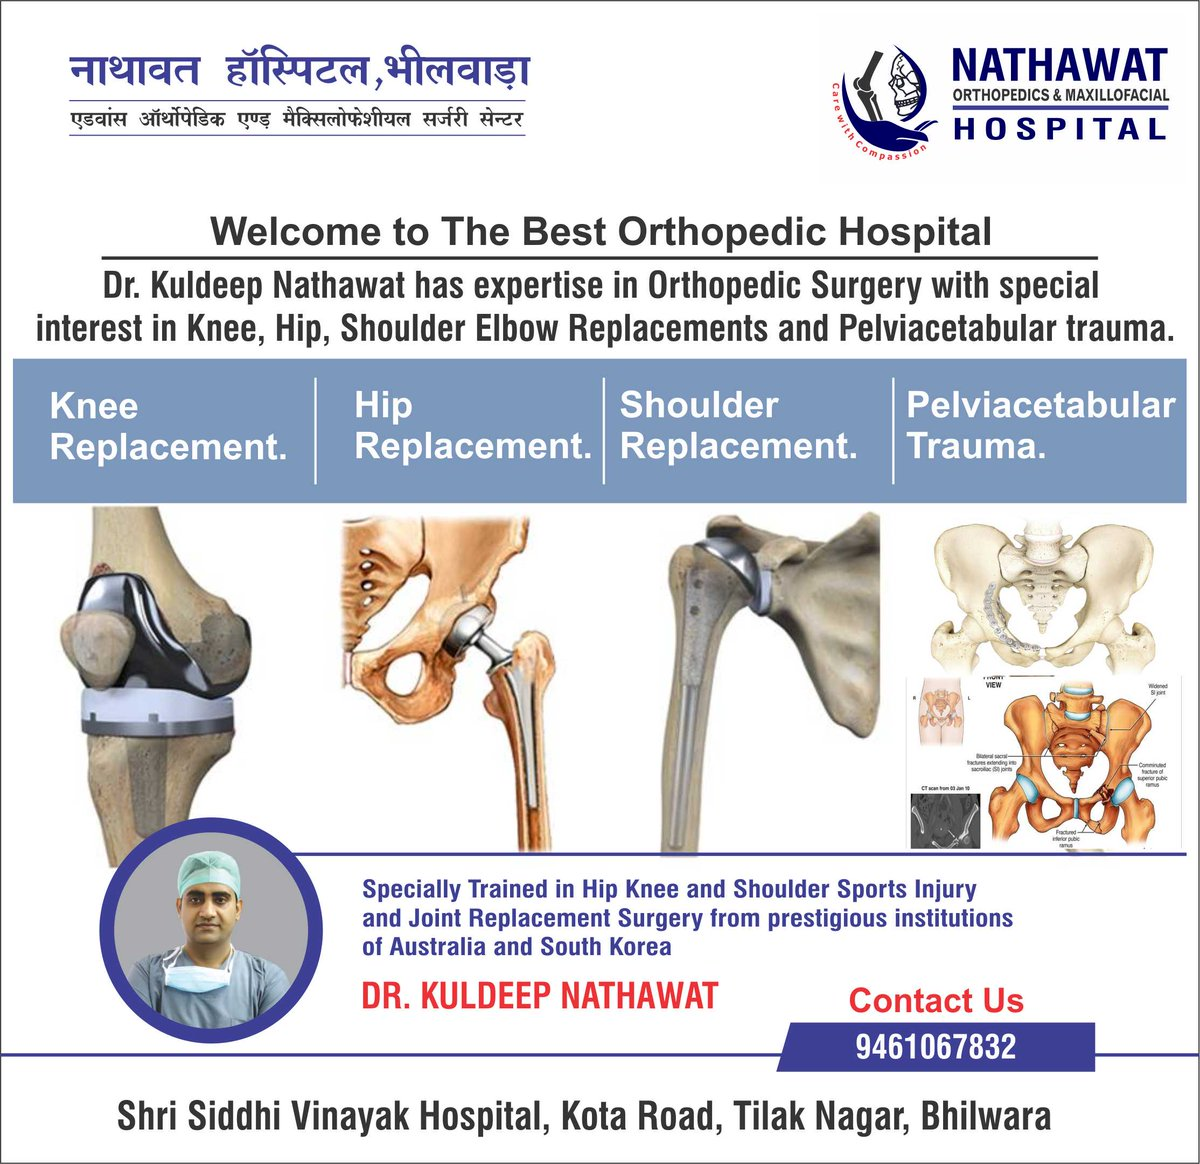 Welcome to The Best Orthopedic Hospital  Dr. Kuldeep Nathawat has expertise in Orthopedic Surgery with special  interest in Knee, Hip, Shoulder Elbow Replacements and Pelviacetabular trauma. DR. KULDEEP NATHAWAT  Contact Us : 9461067832  #COMPUTER ASSISTED KNEE REPLACEMENT pic.twitter.com/twA6gt6fRk